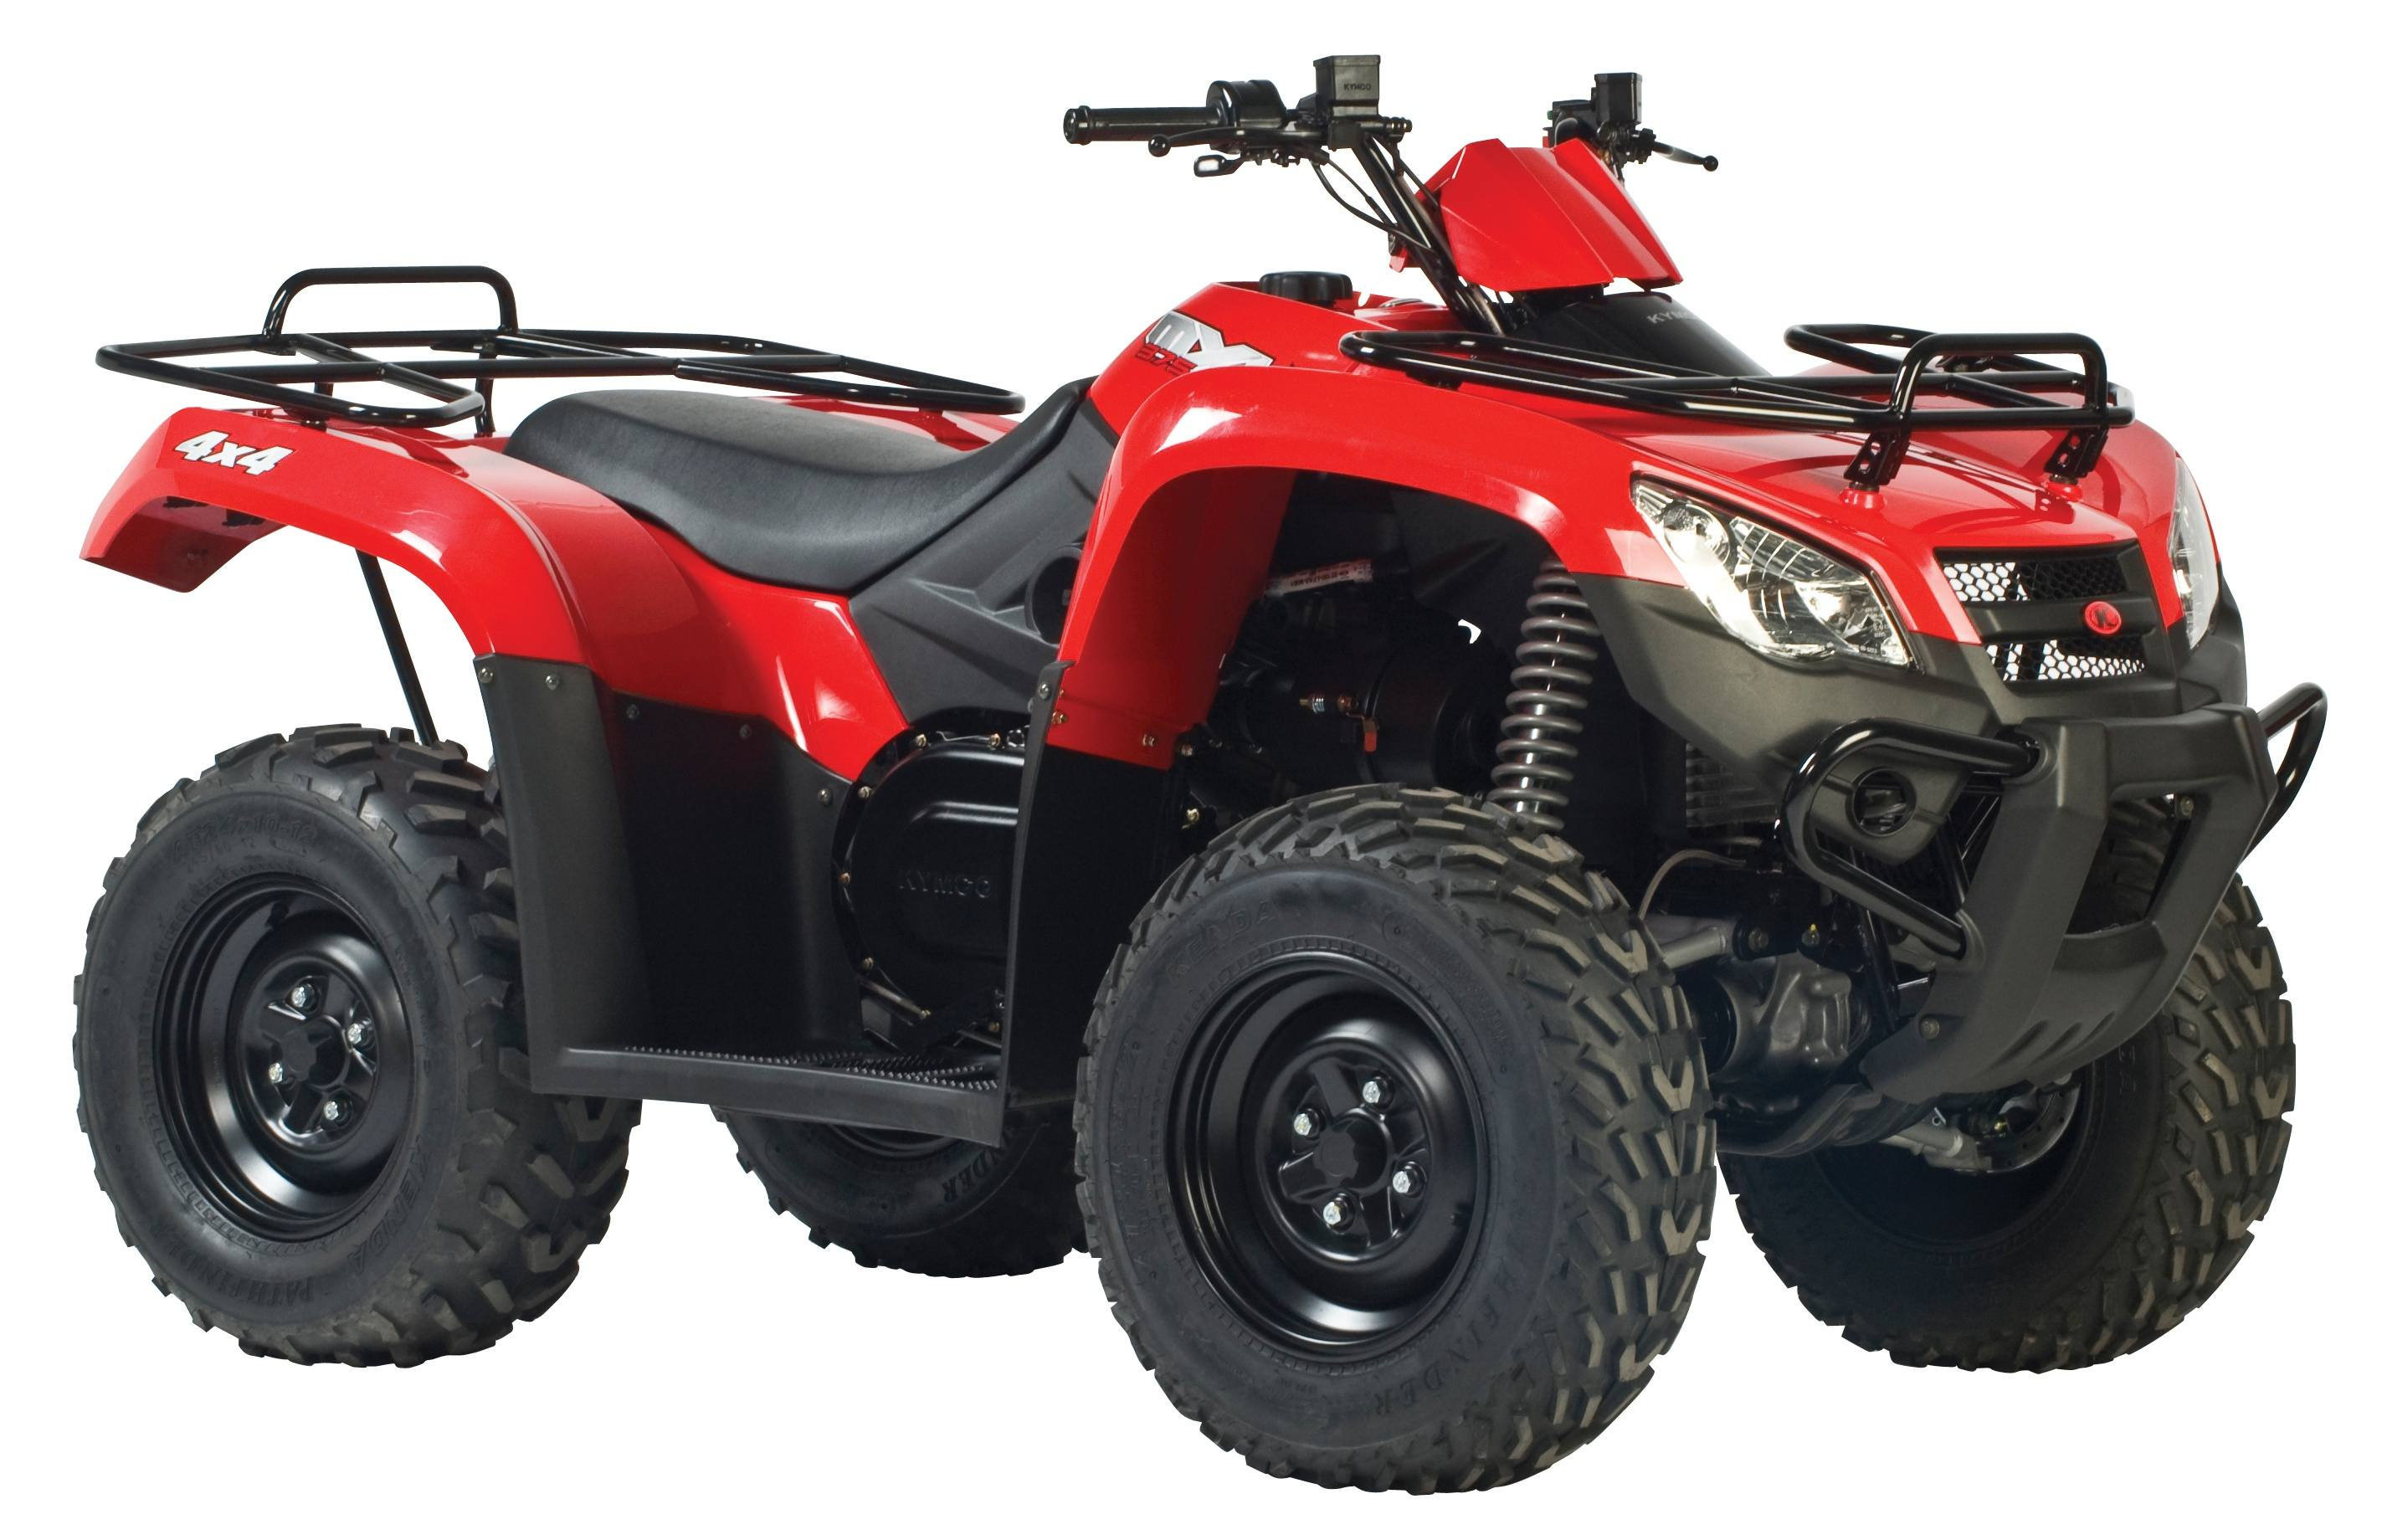 2016 kymco mxu 450i atvs mount sterling kentucky mxu450i. Black Bedroom Furniture Sets. Home Design Ideas